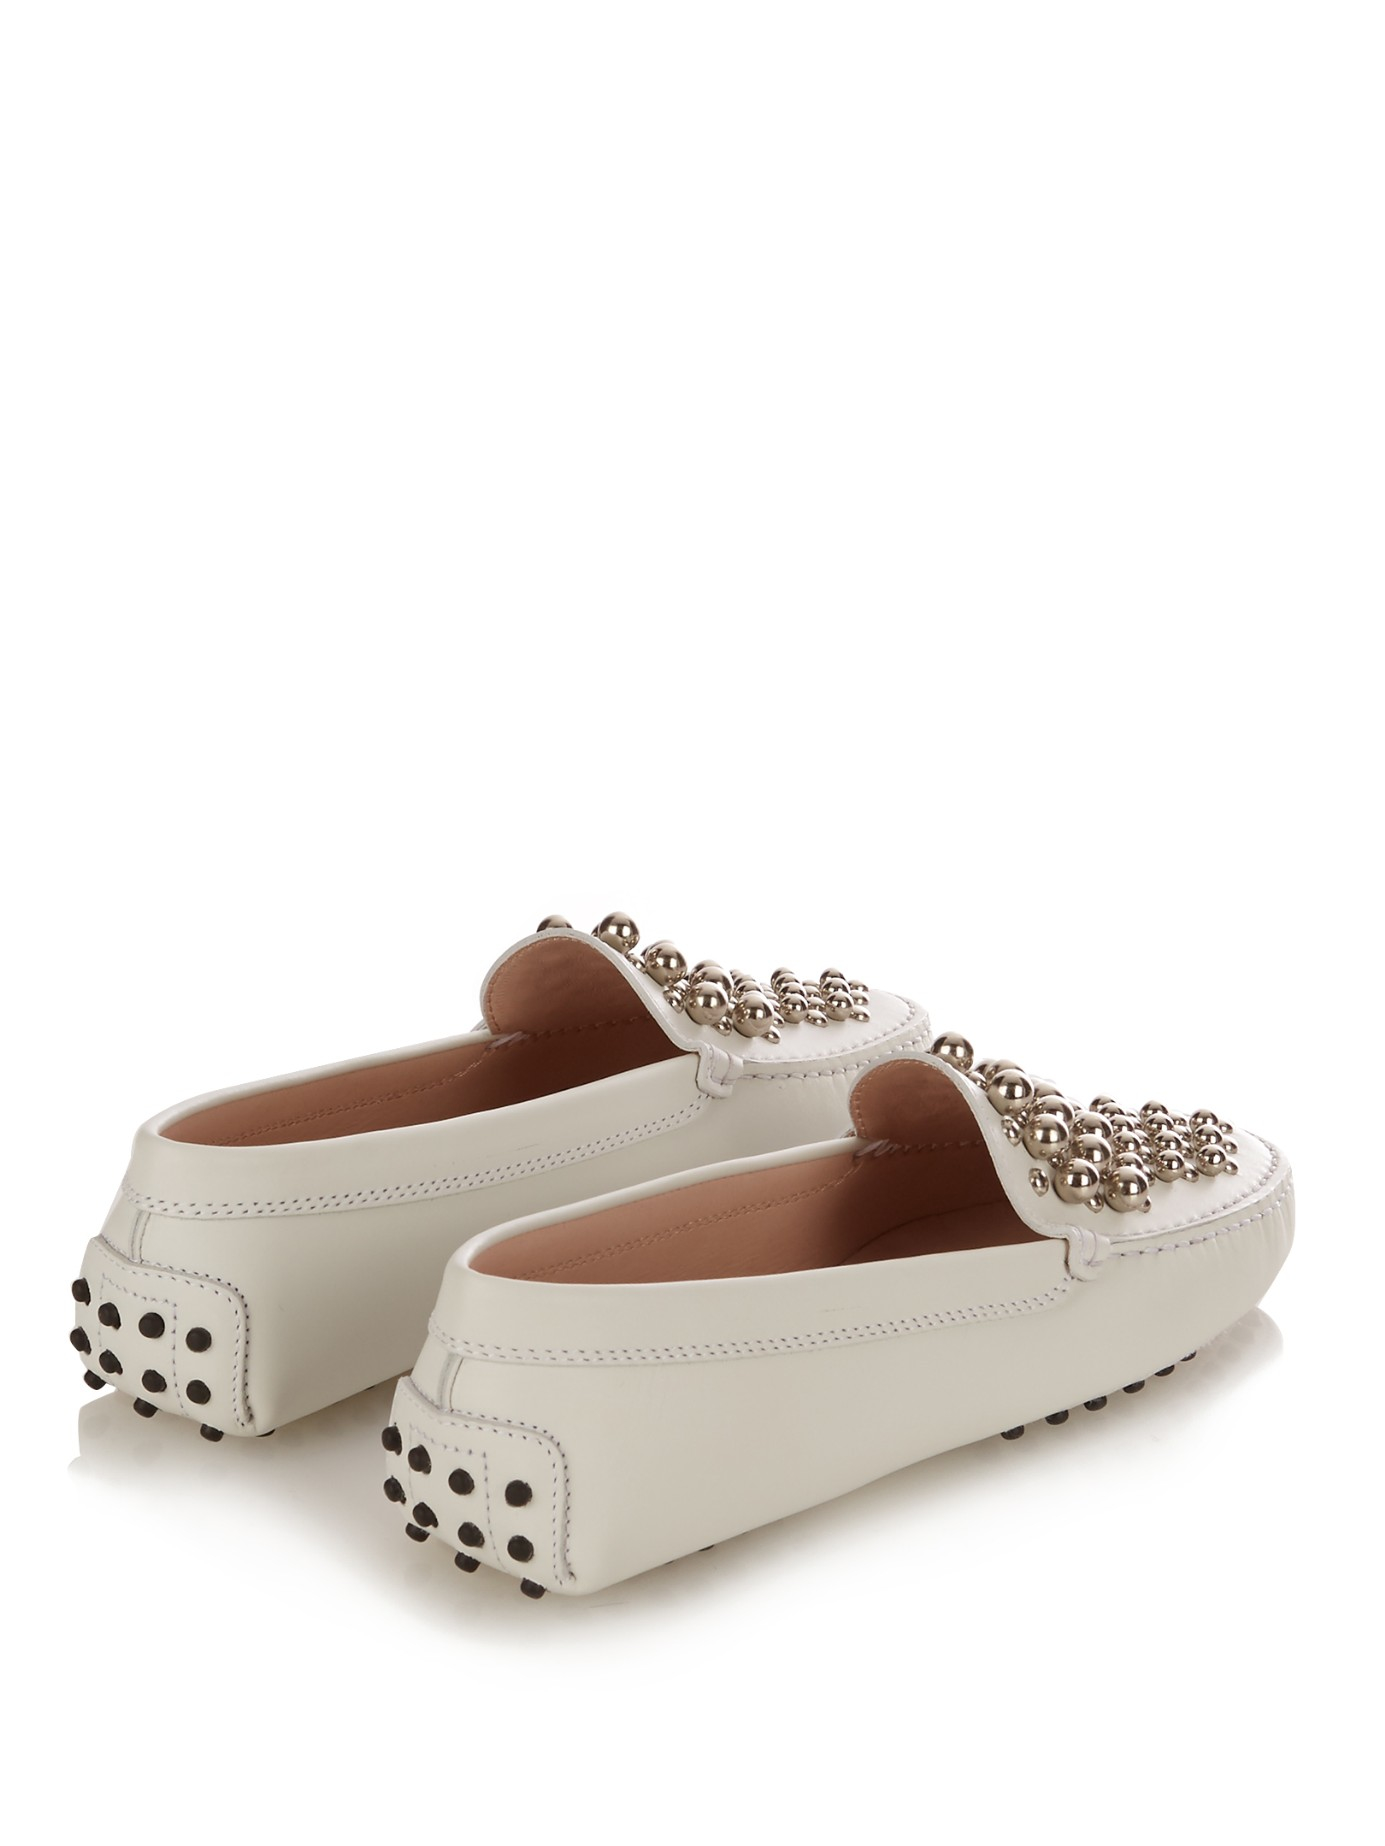 Tod's Gommino Embellished Patent-leather Loafers Clearance Sale D1uTLyl